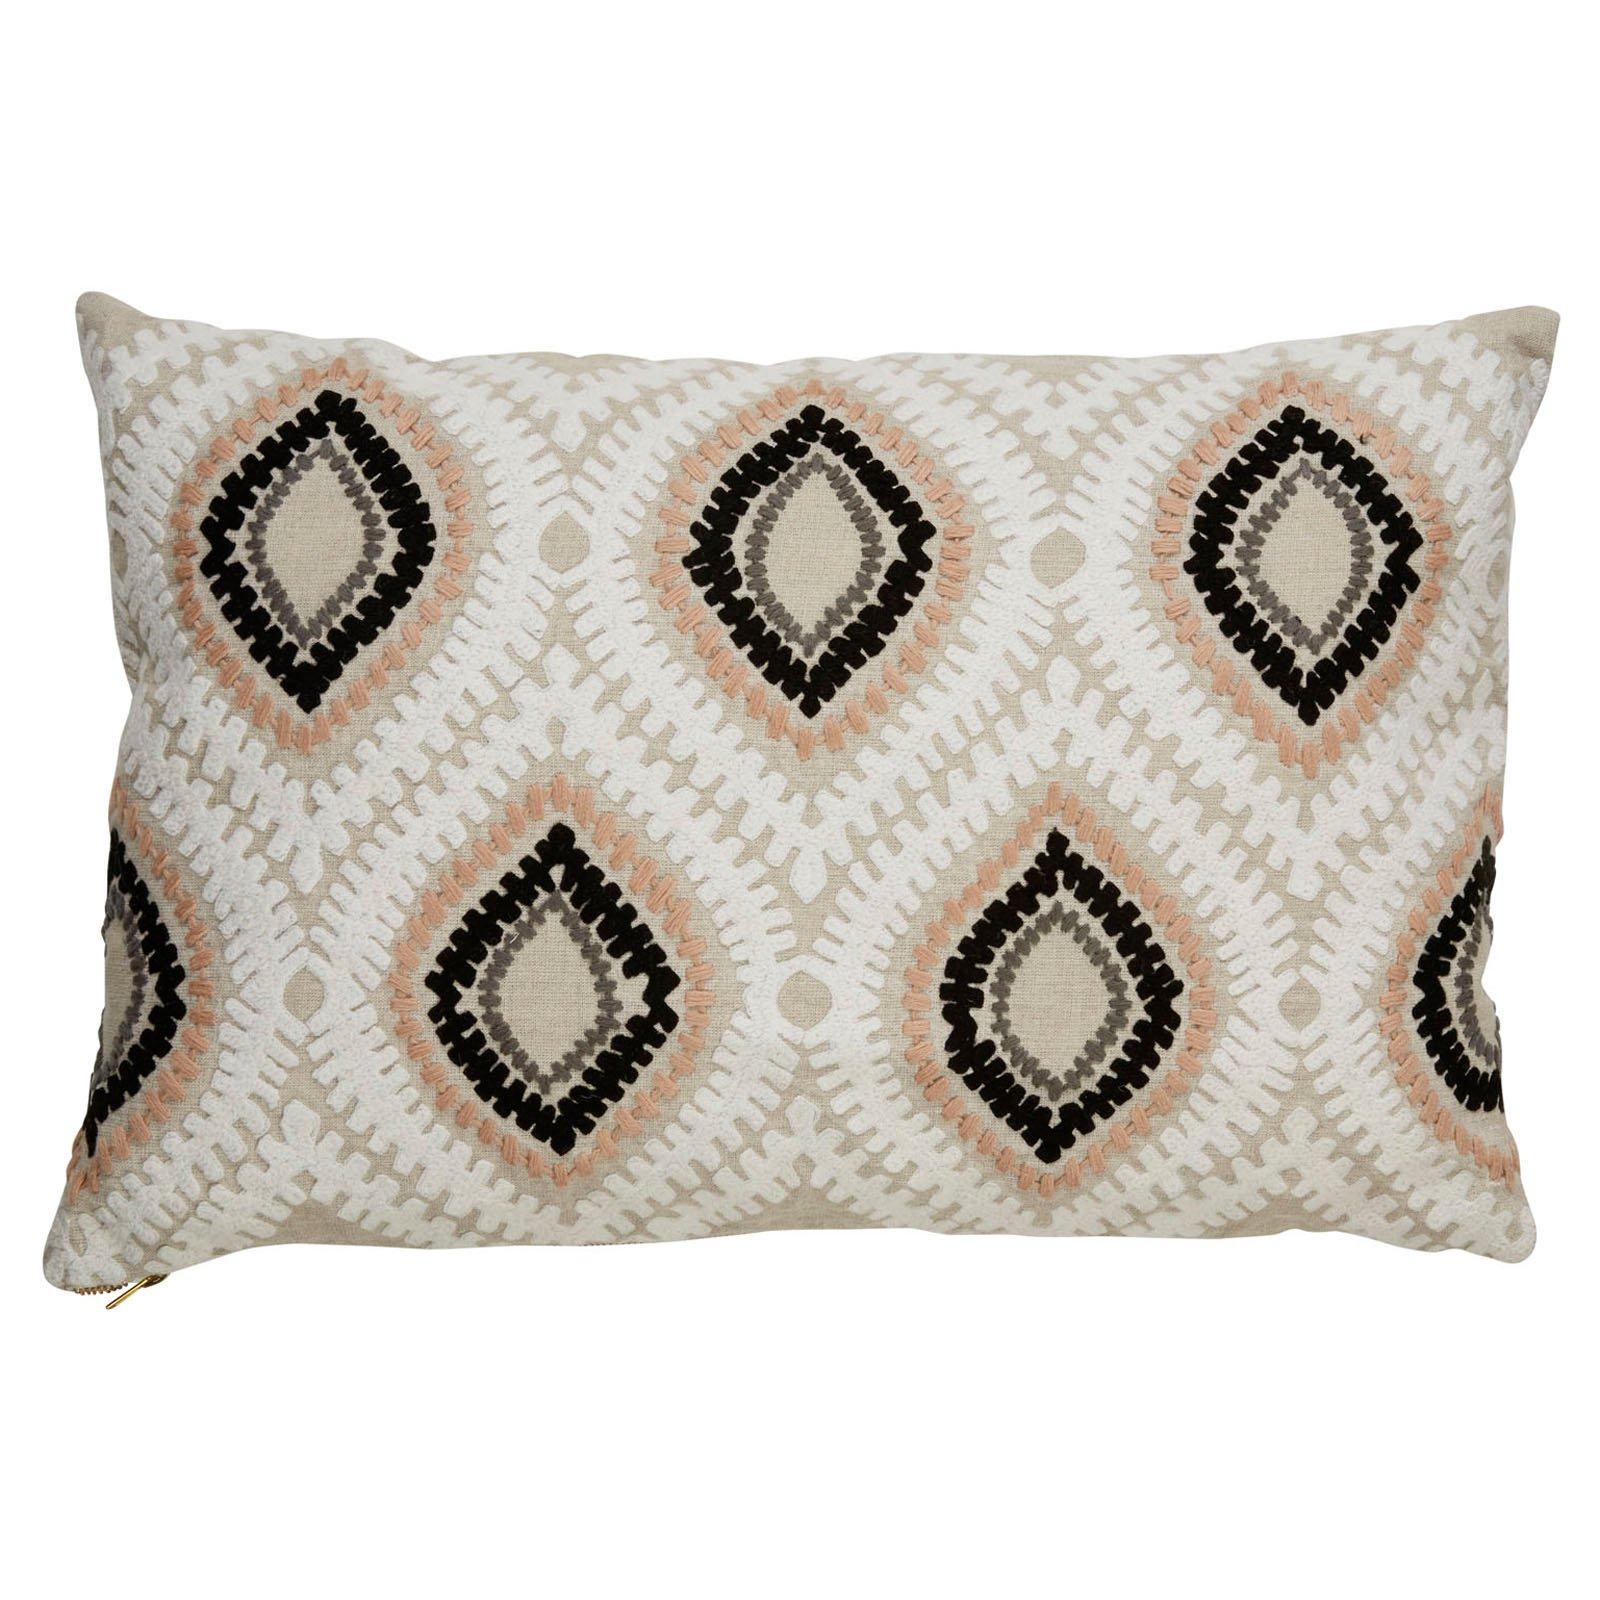 Nikkichu: Nikki Chu By Jaipur Tribal Linen Decorative Pillow